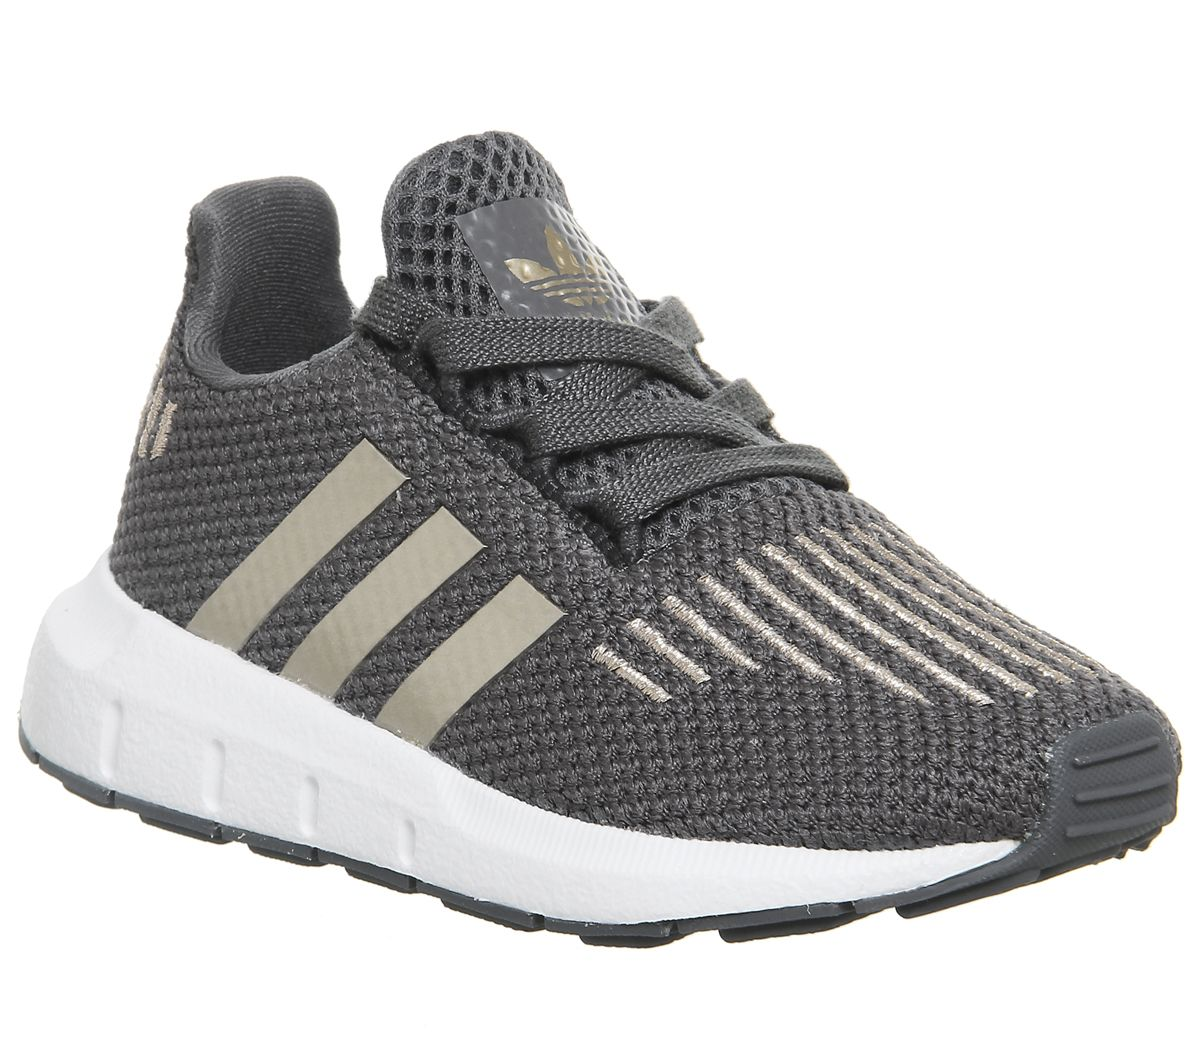 0cc29e6efbb60 adidas Swift Run Infant Trainers Grey Pink - Unisex